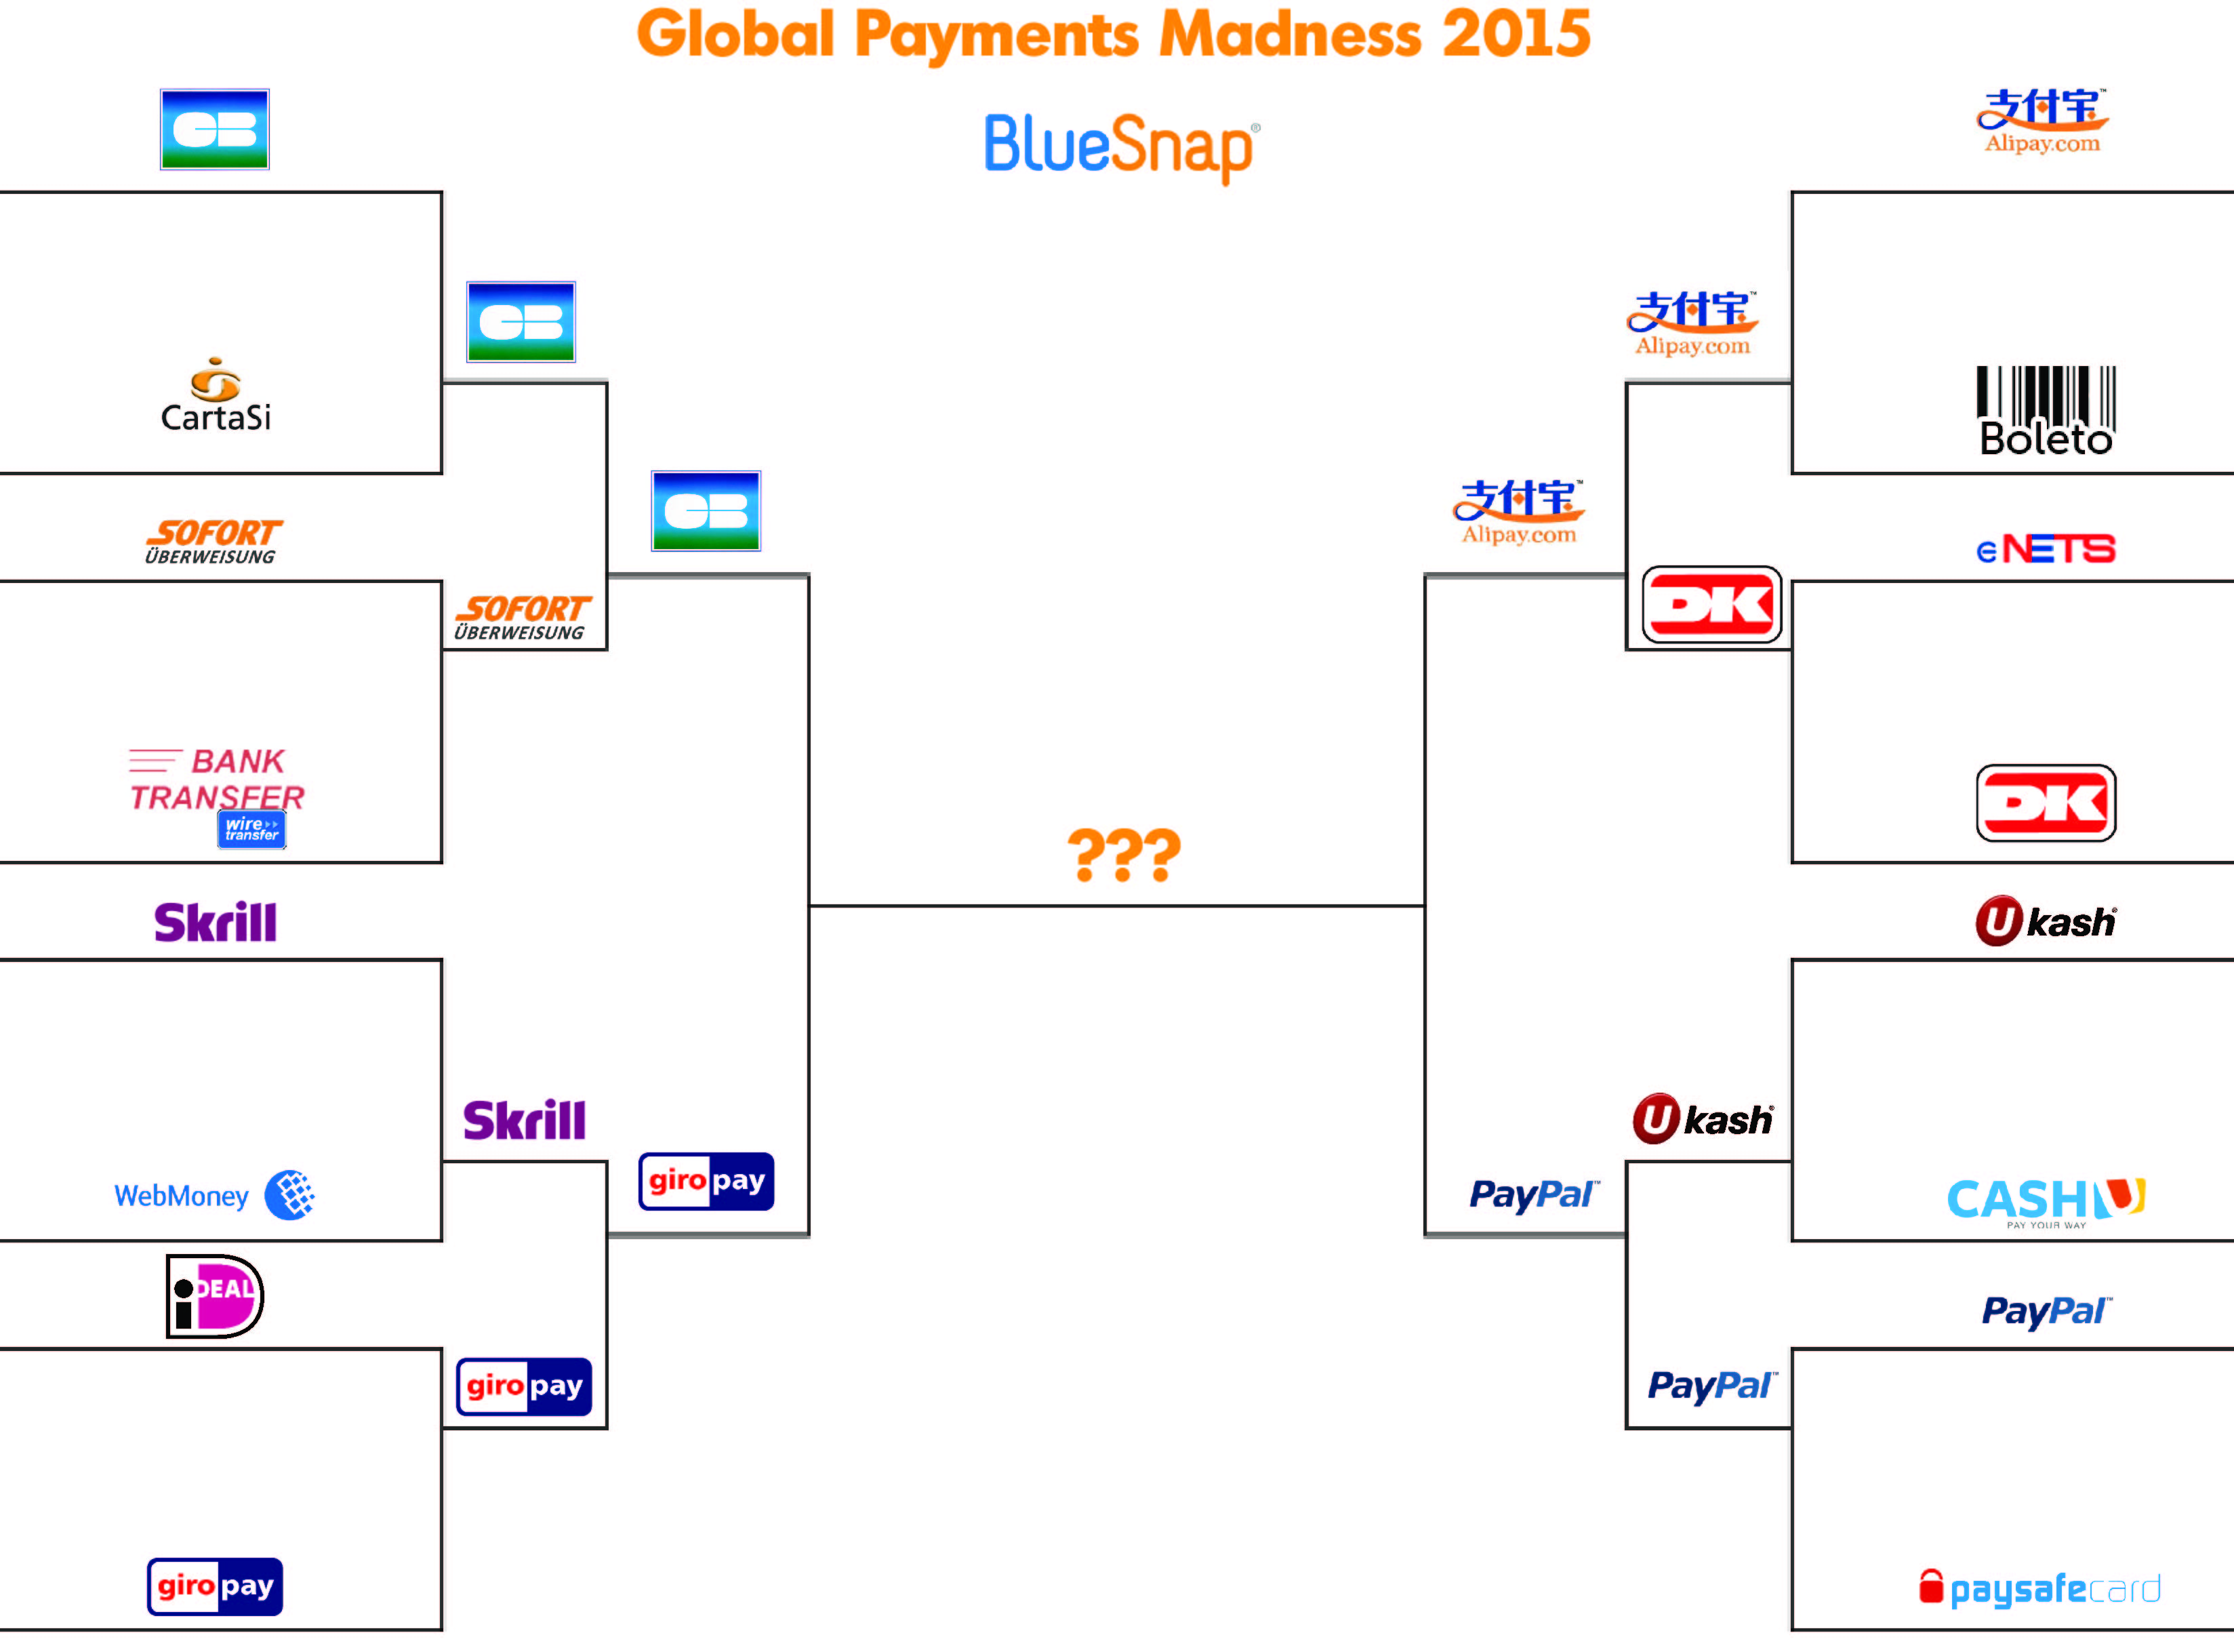 Global Payments Madness 2015